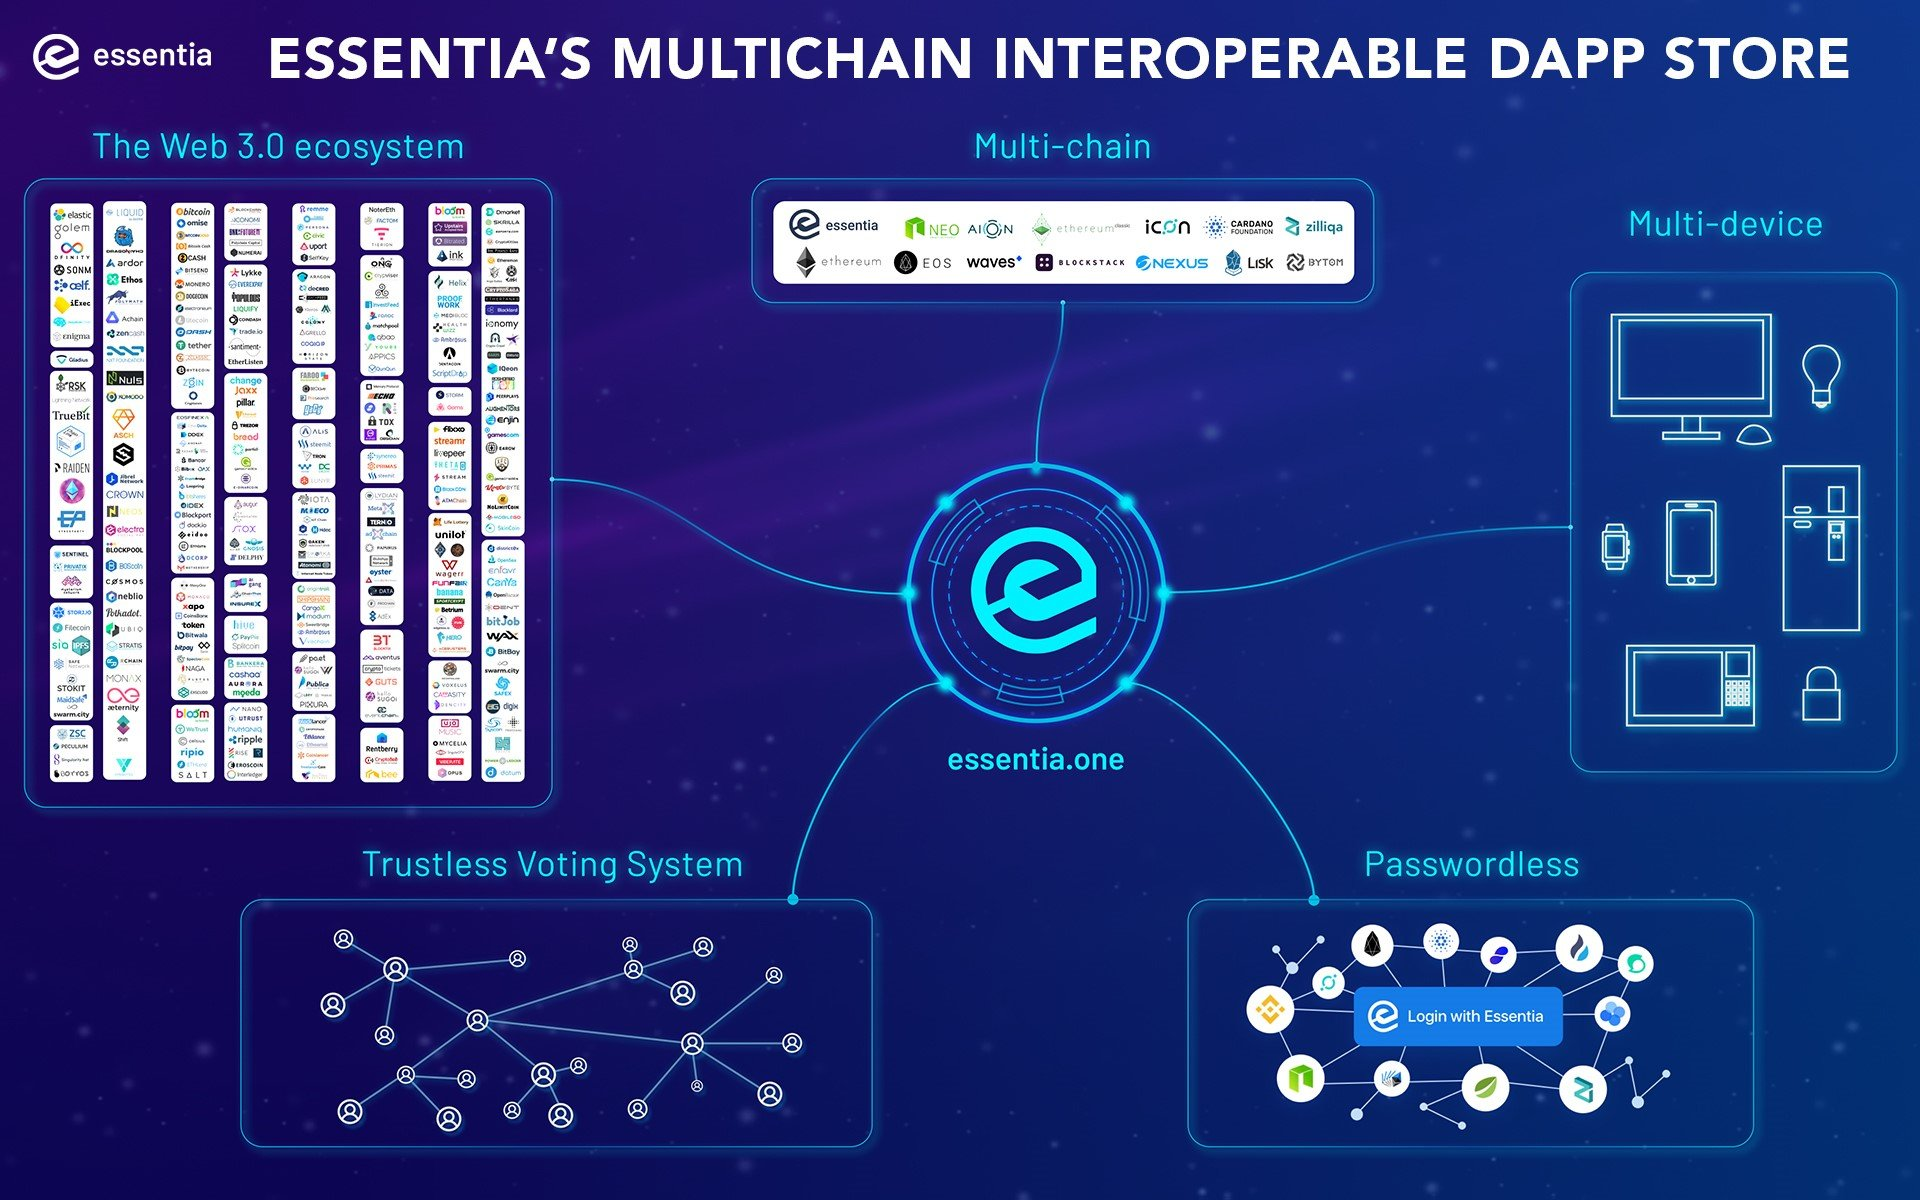 Essentia.One to Release World's First Interoperable Multi-Chain Dapp